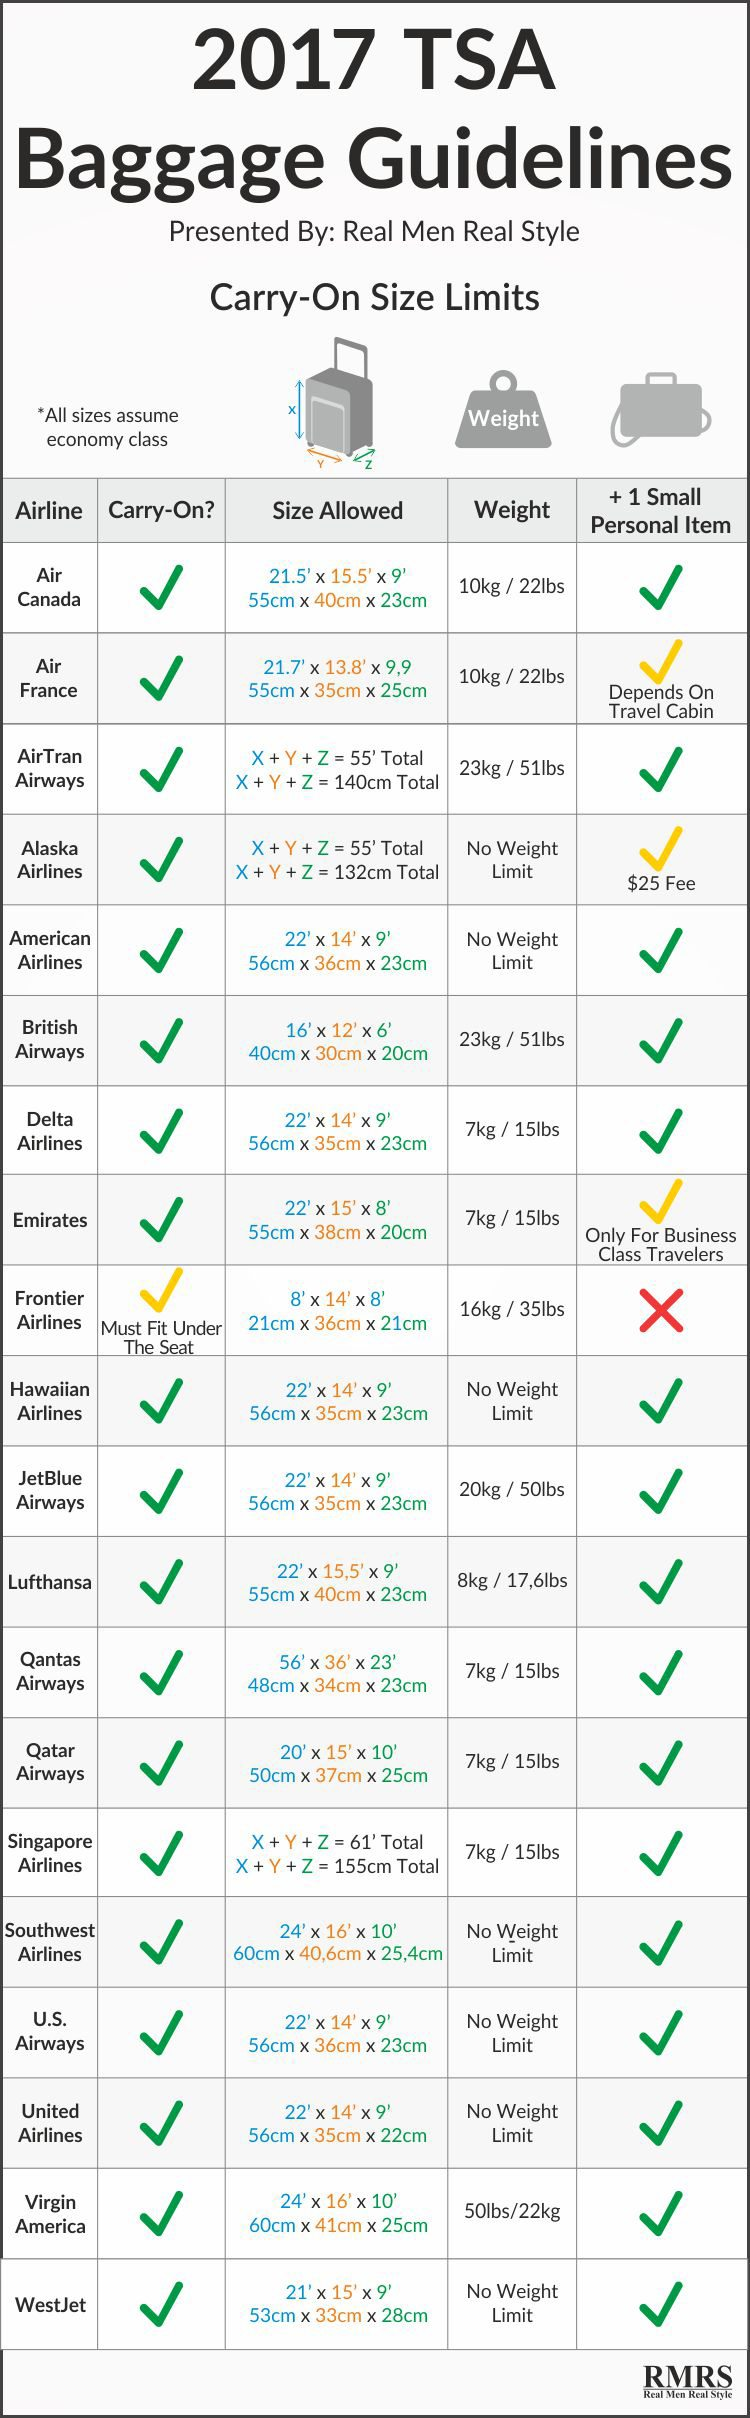 Tsa Baggage Allowances For Every Major Airline Infographic